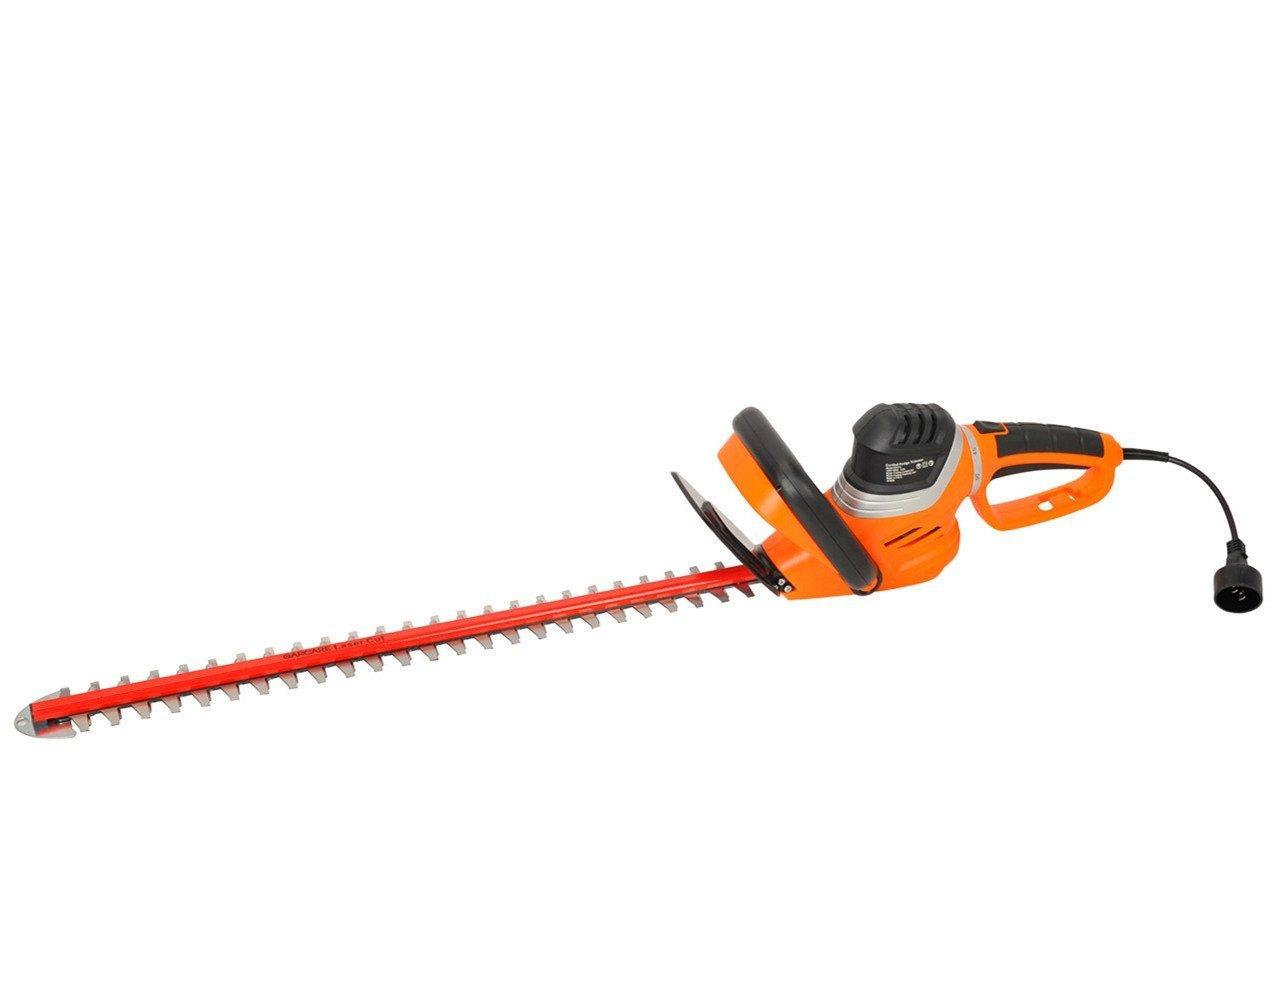 GARCARE 4.8-Amp Corded Hedge Trimmer with Rotating Handle and 24'' Dual Cutting Laser Blade, Blade Cover